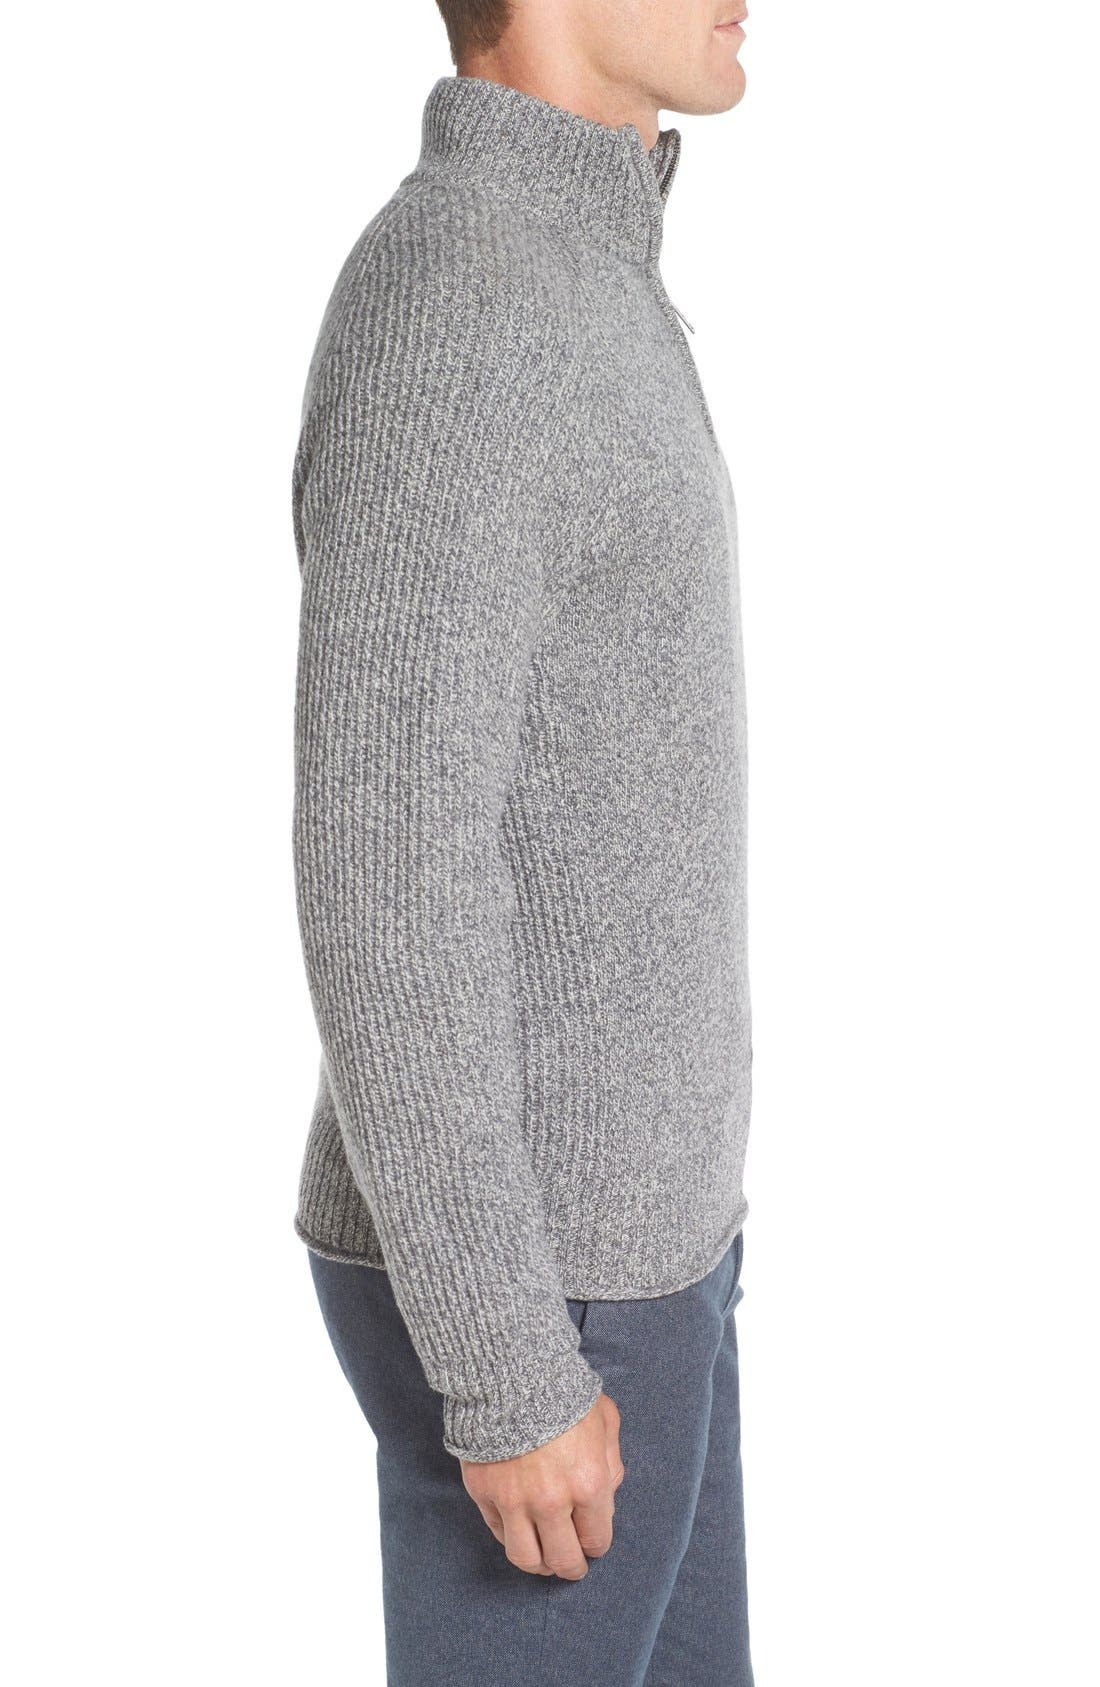 Stredwick Lambswool Sweater,                             Alternate thumbnail 14, color,